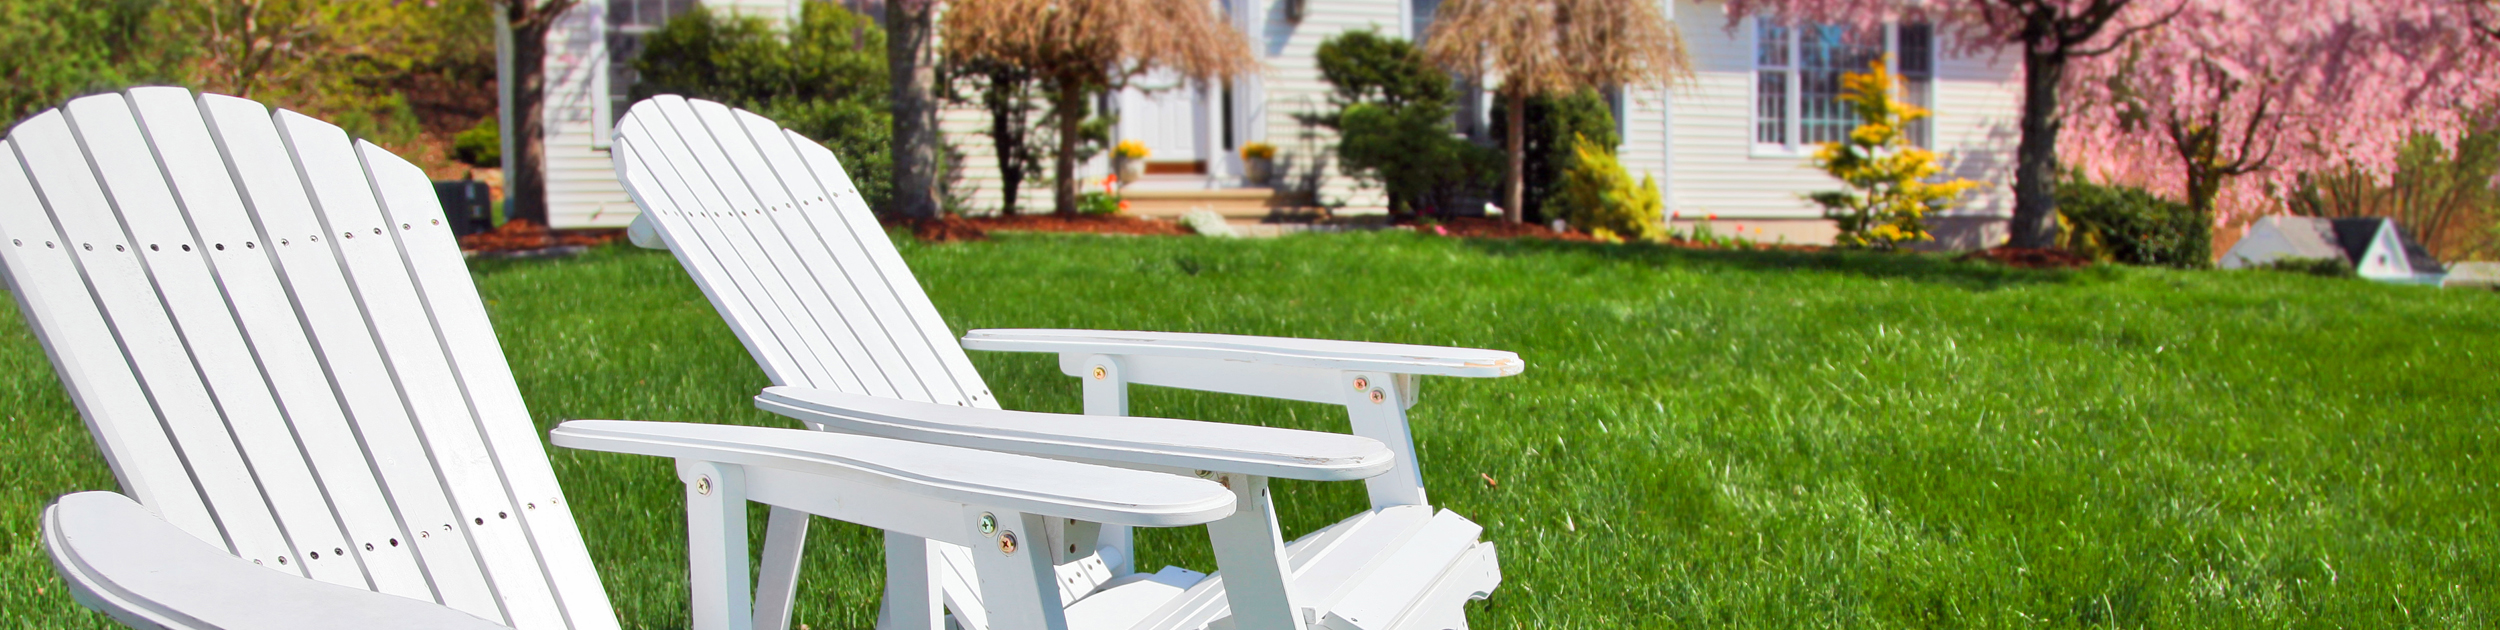 spring image - white house with blooming spring plantings out front and two white adirondack chairs sitting on a beautiful lawn